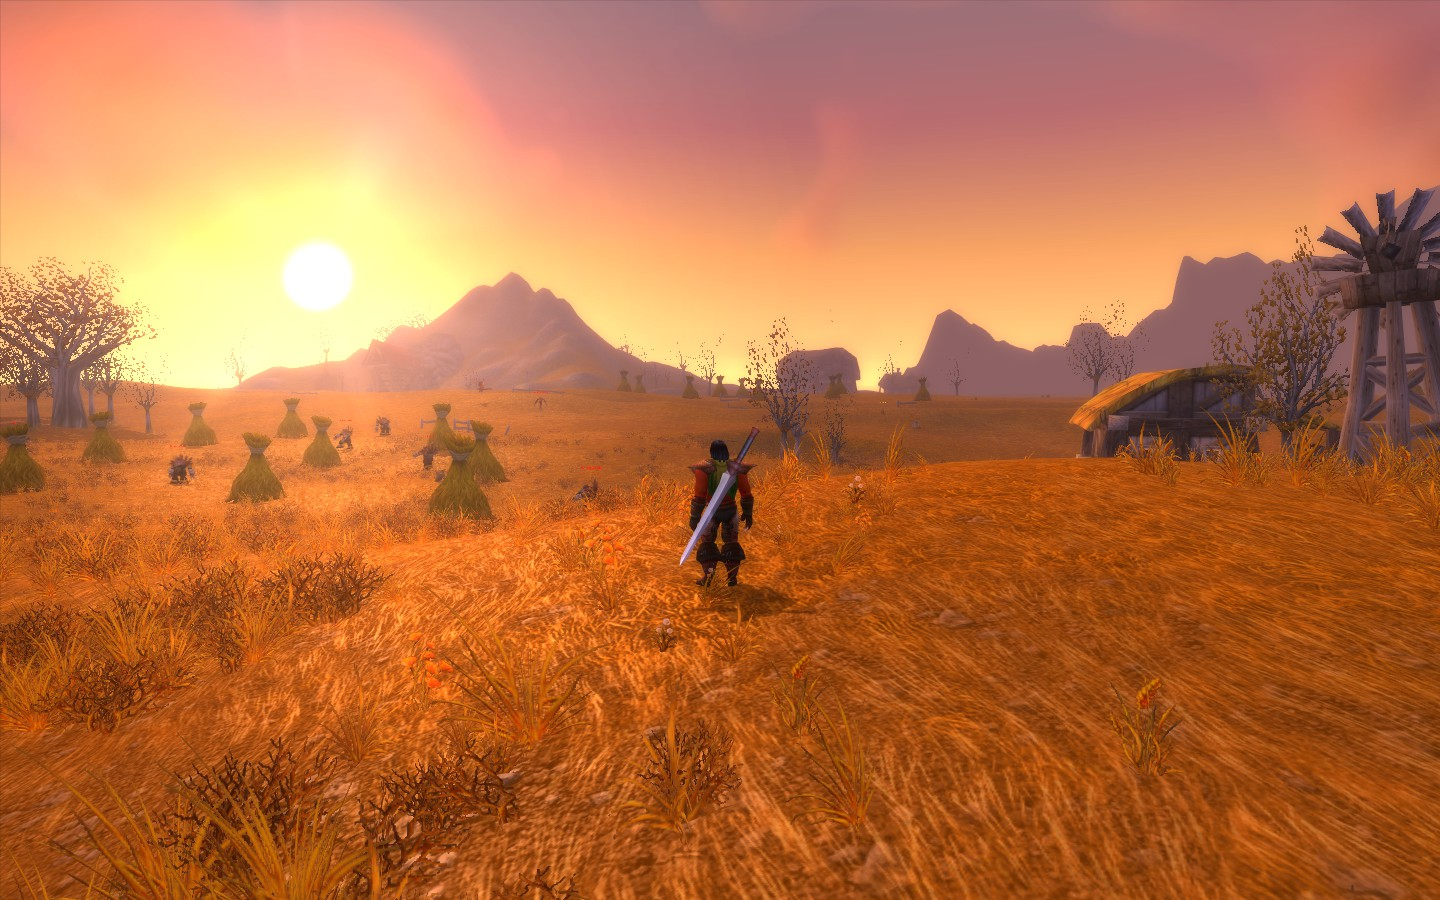 Scenic View In Old Westfall   Imgur 1440x900